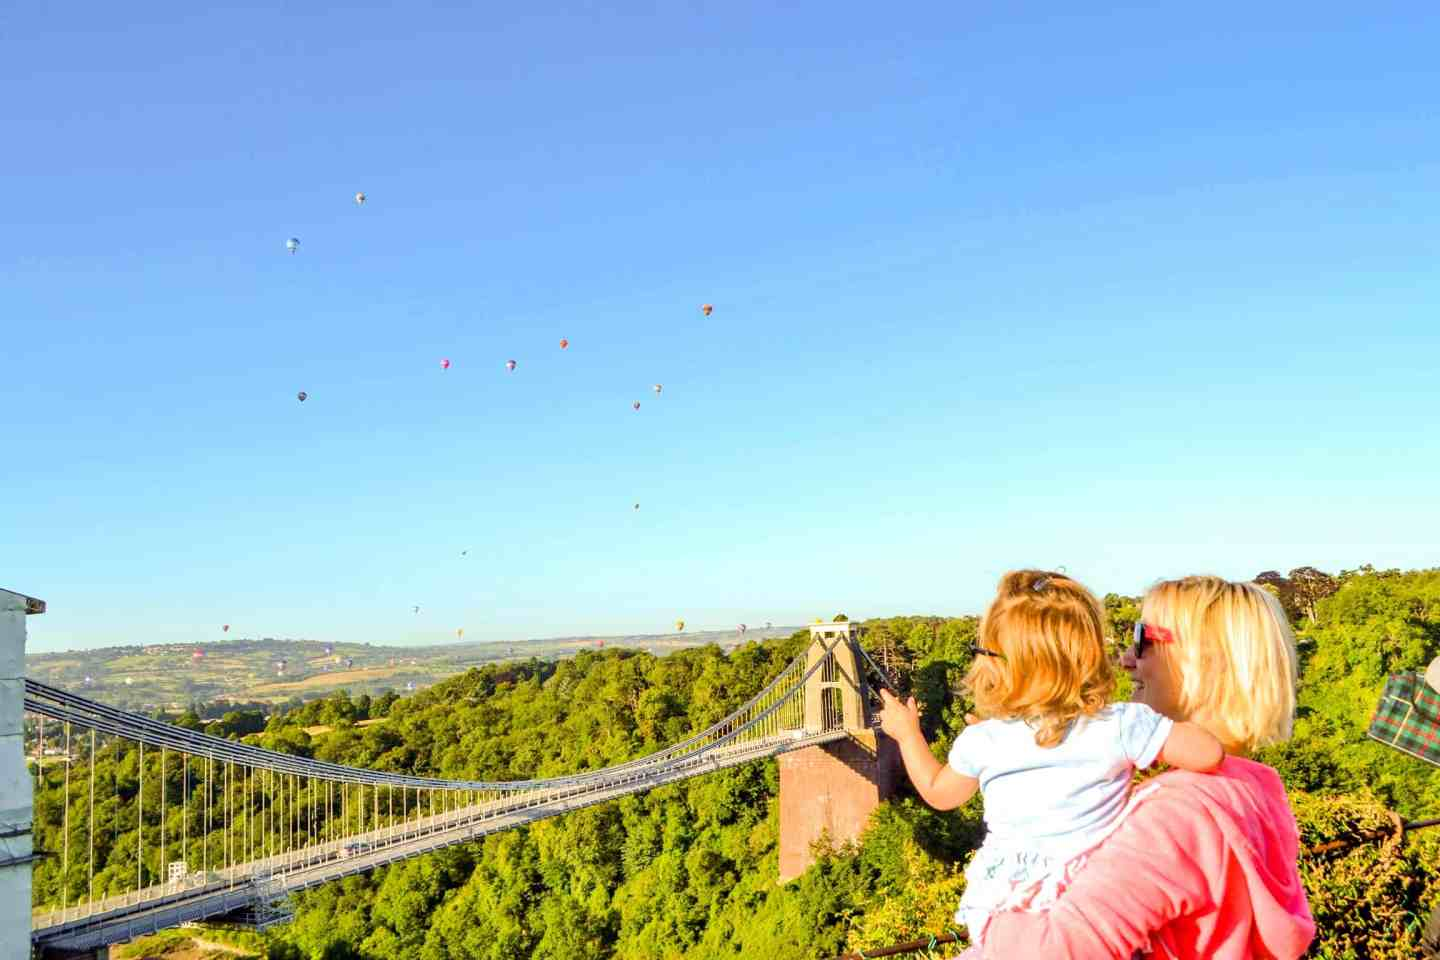 Watching balloons over Clifton Suspension Bridge